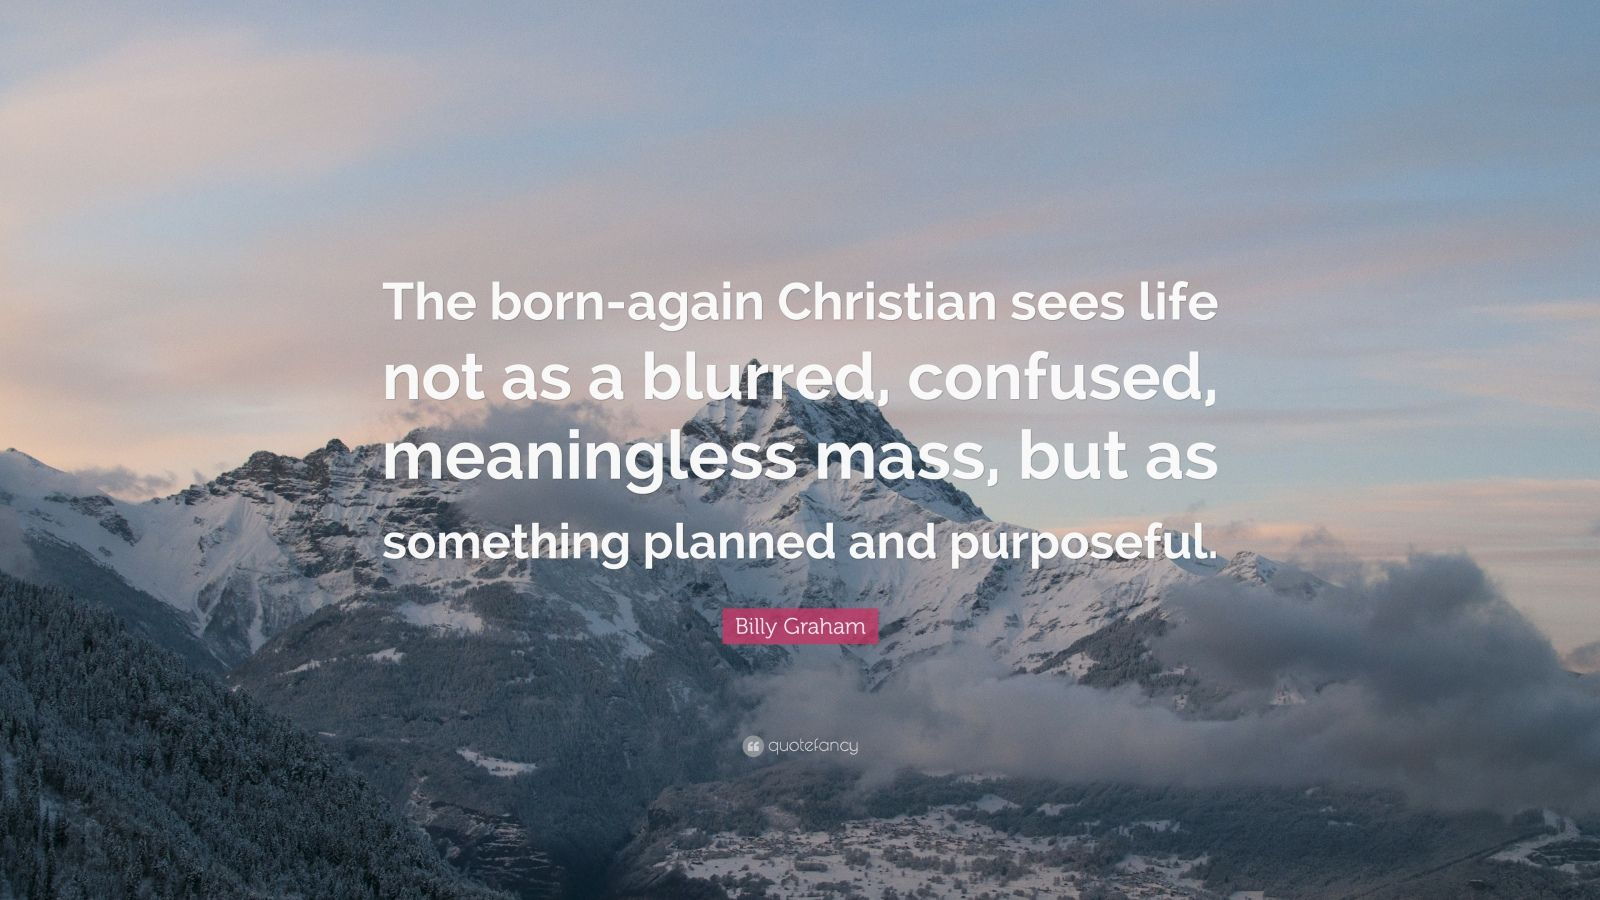 """Billy Graham Quote: """"The born-again Christian sees life not as a blurred, confused, meaningless mass, but as something planned and purposeful."""""""